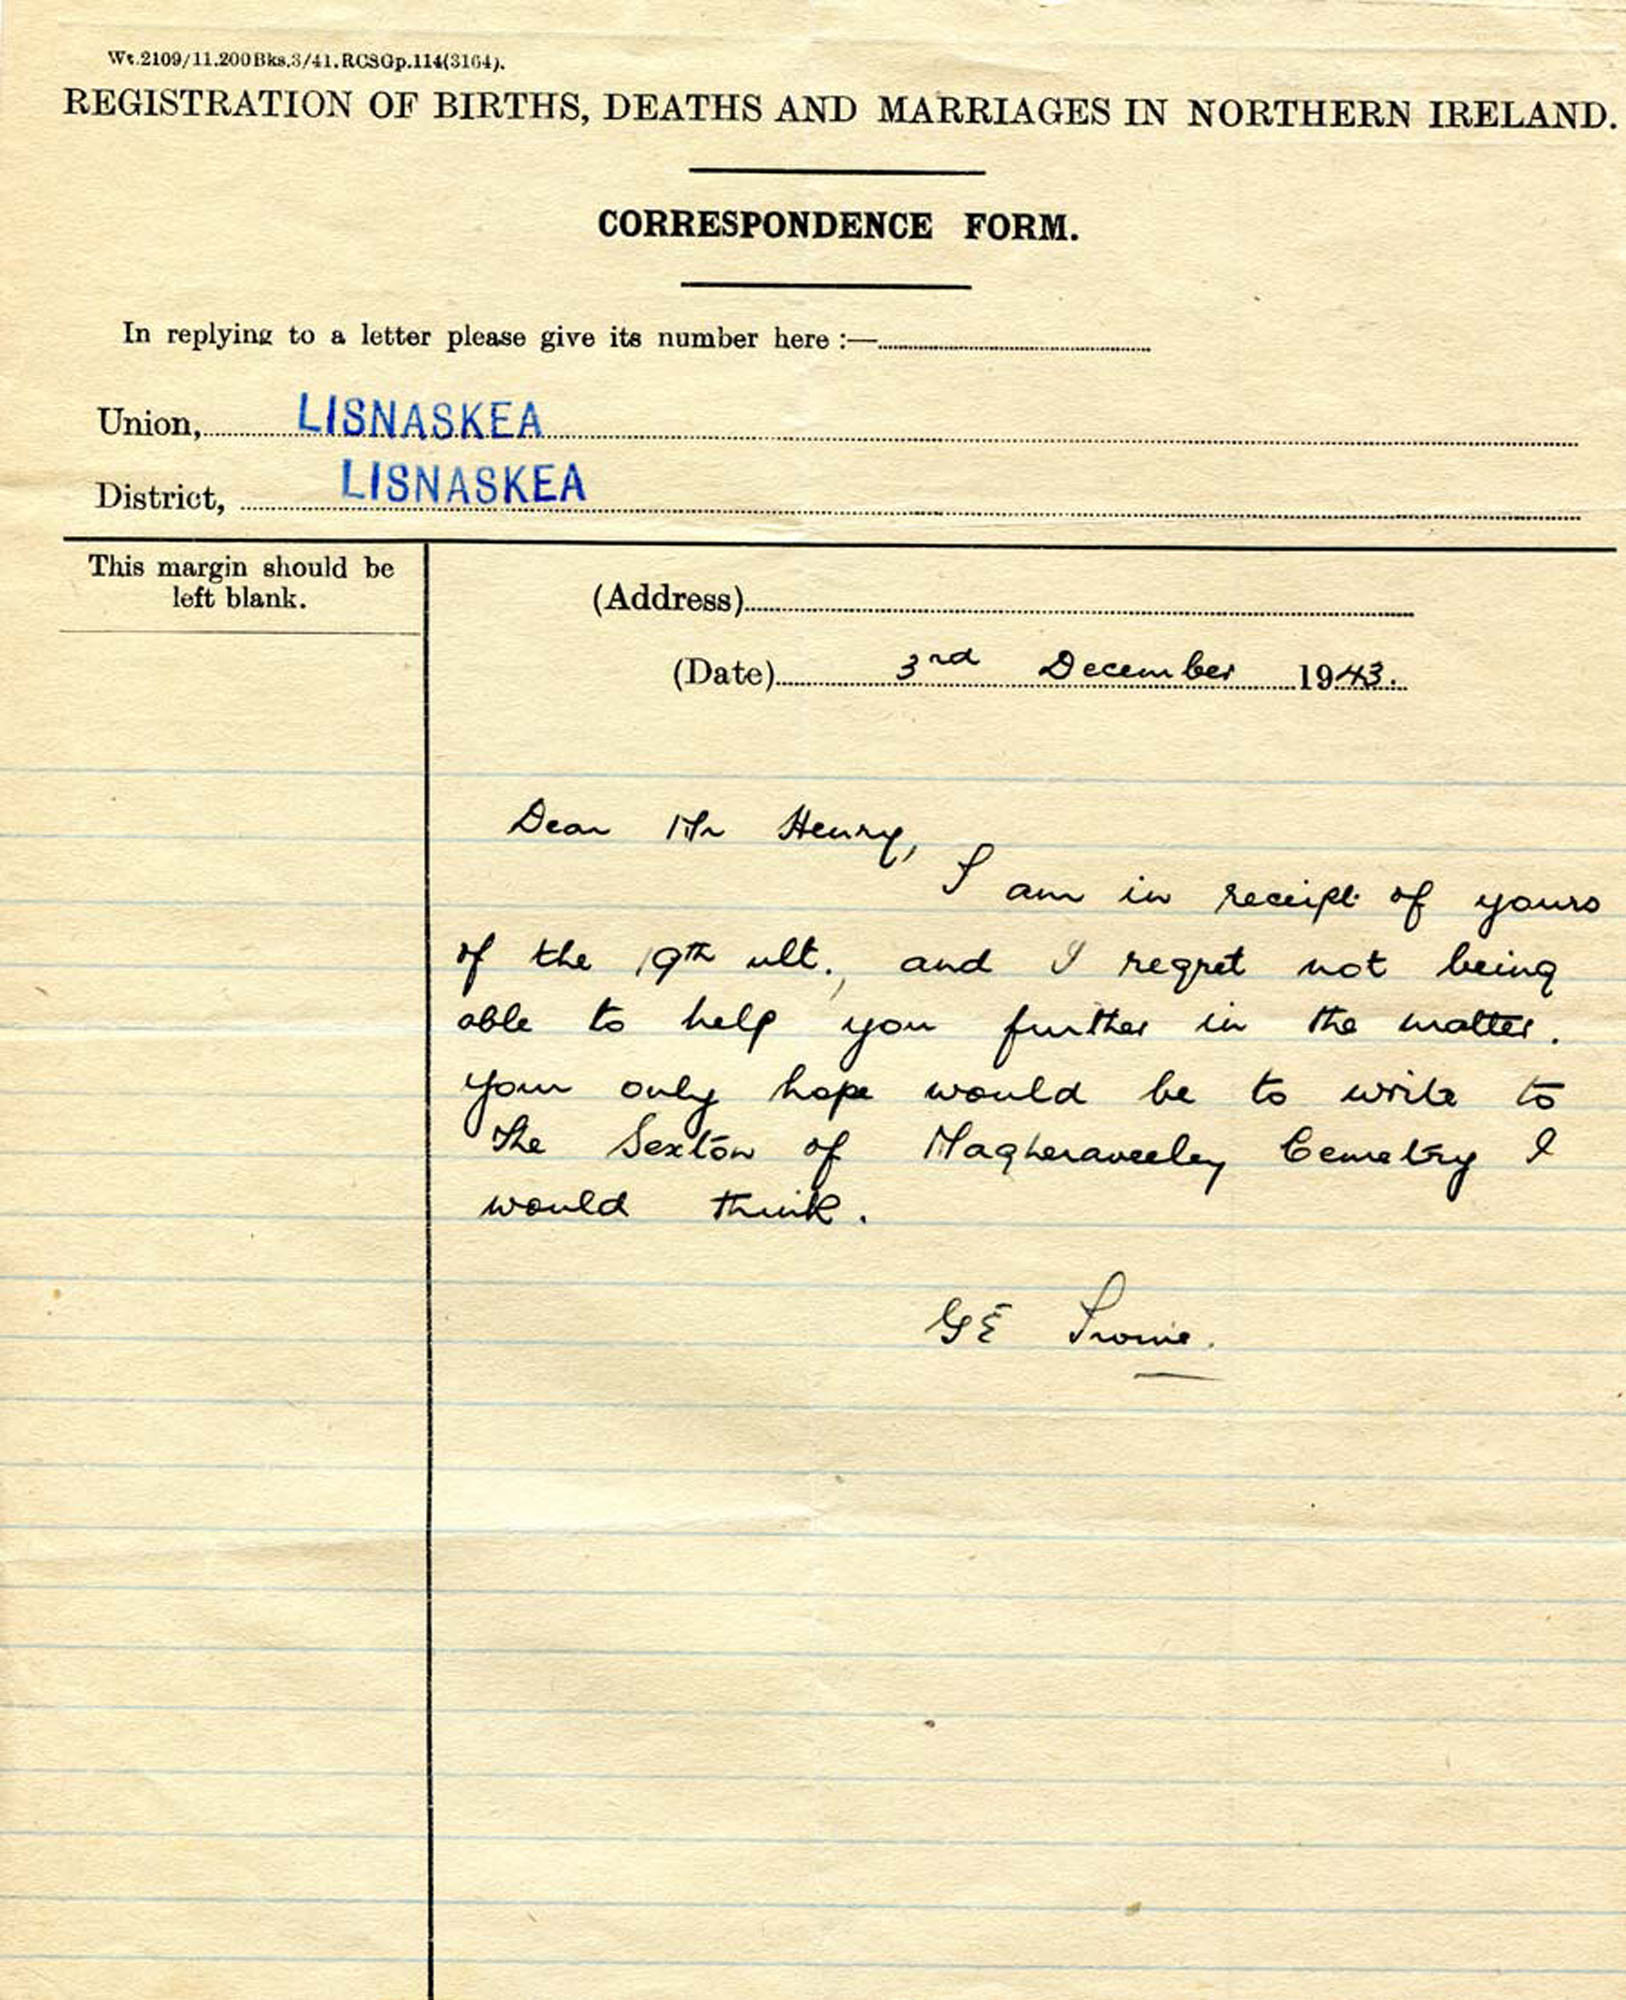 Letter from G E Irvine 3 12 1943 – NI Archive